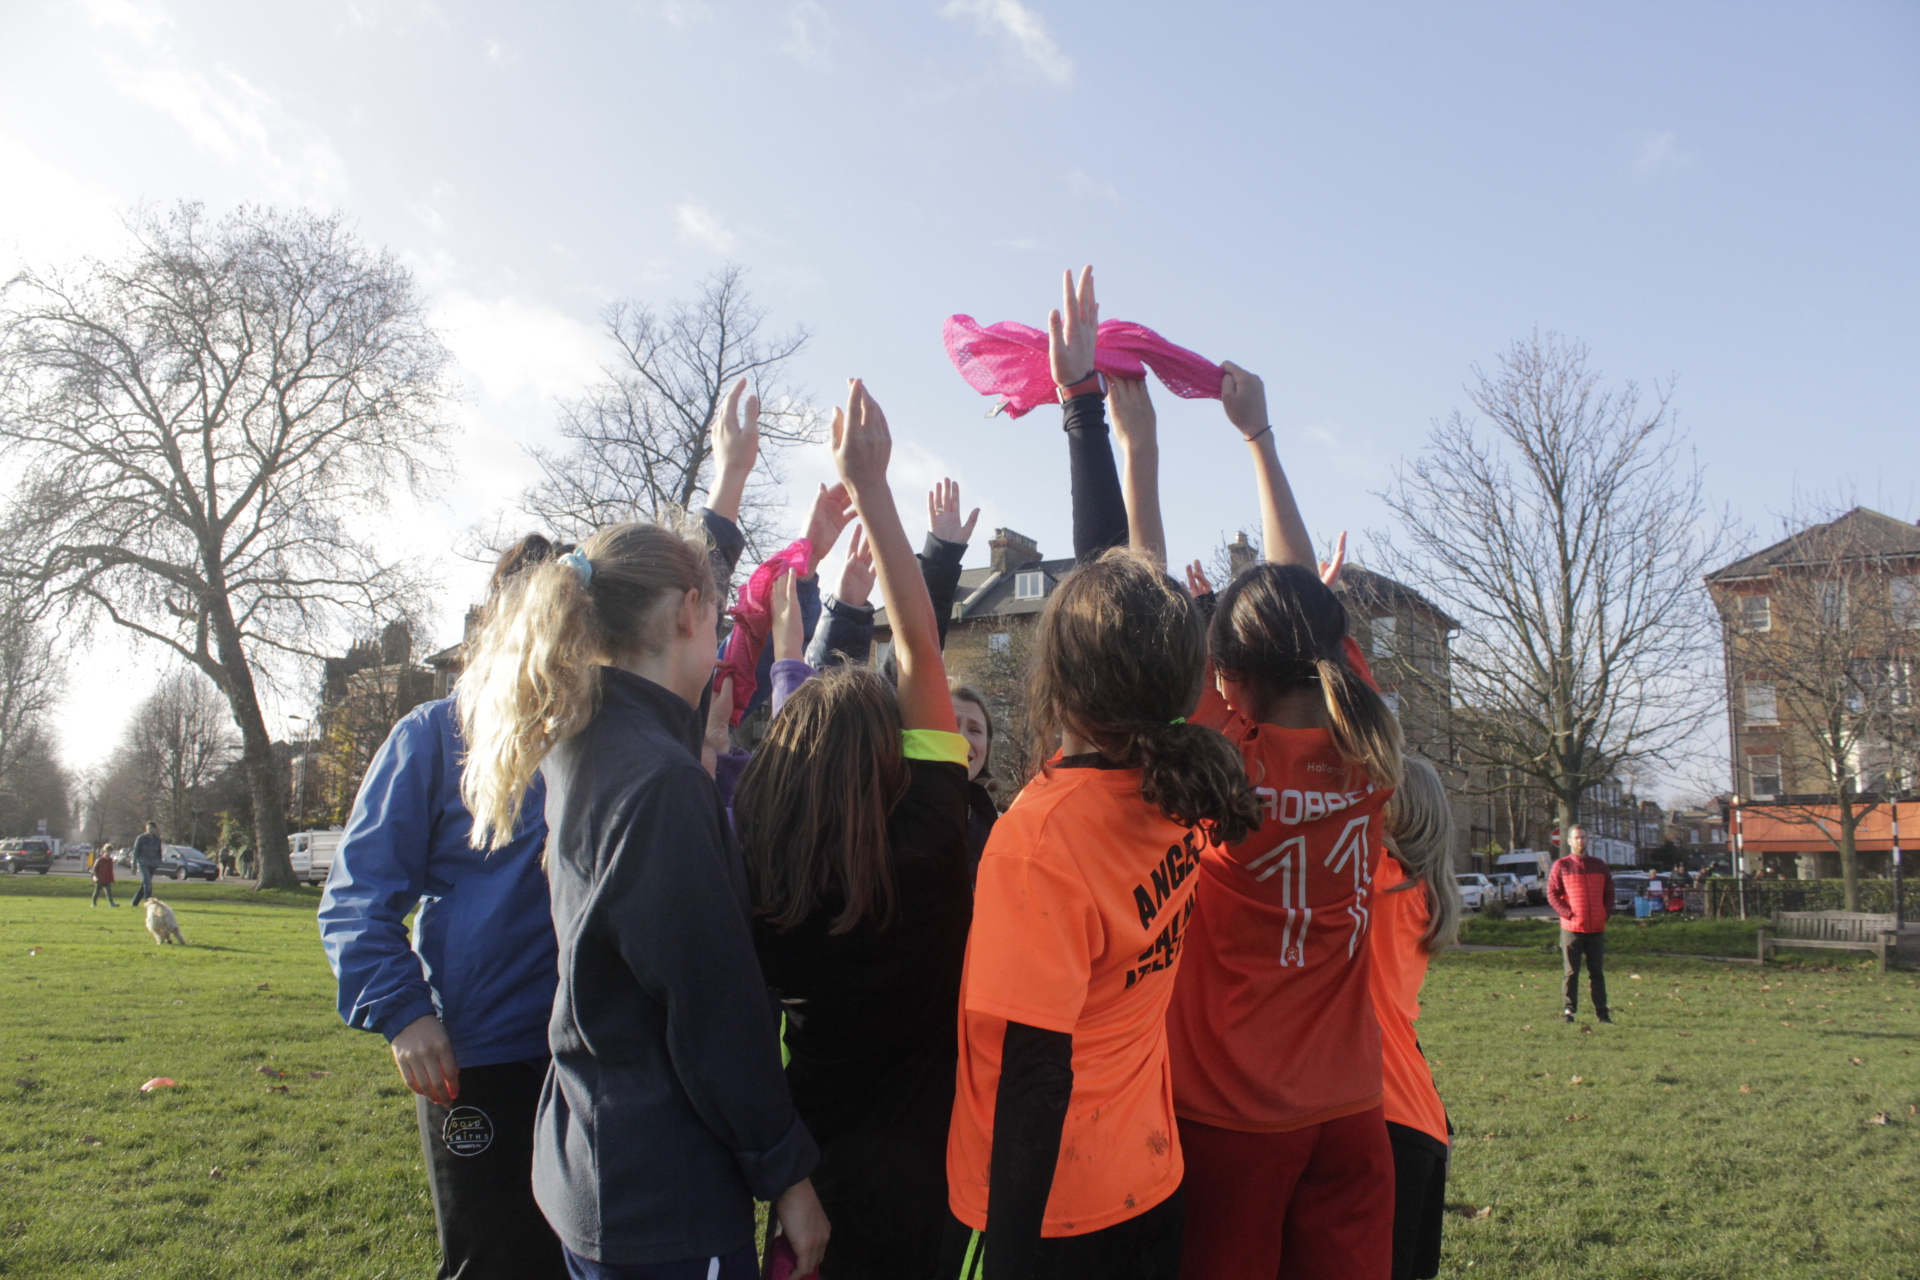 At Girls United we provide the opportunities for young players to form new friendship within their team